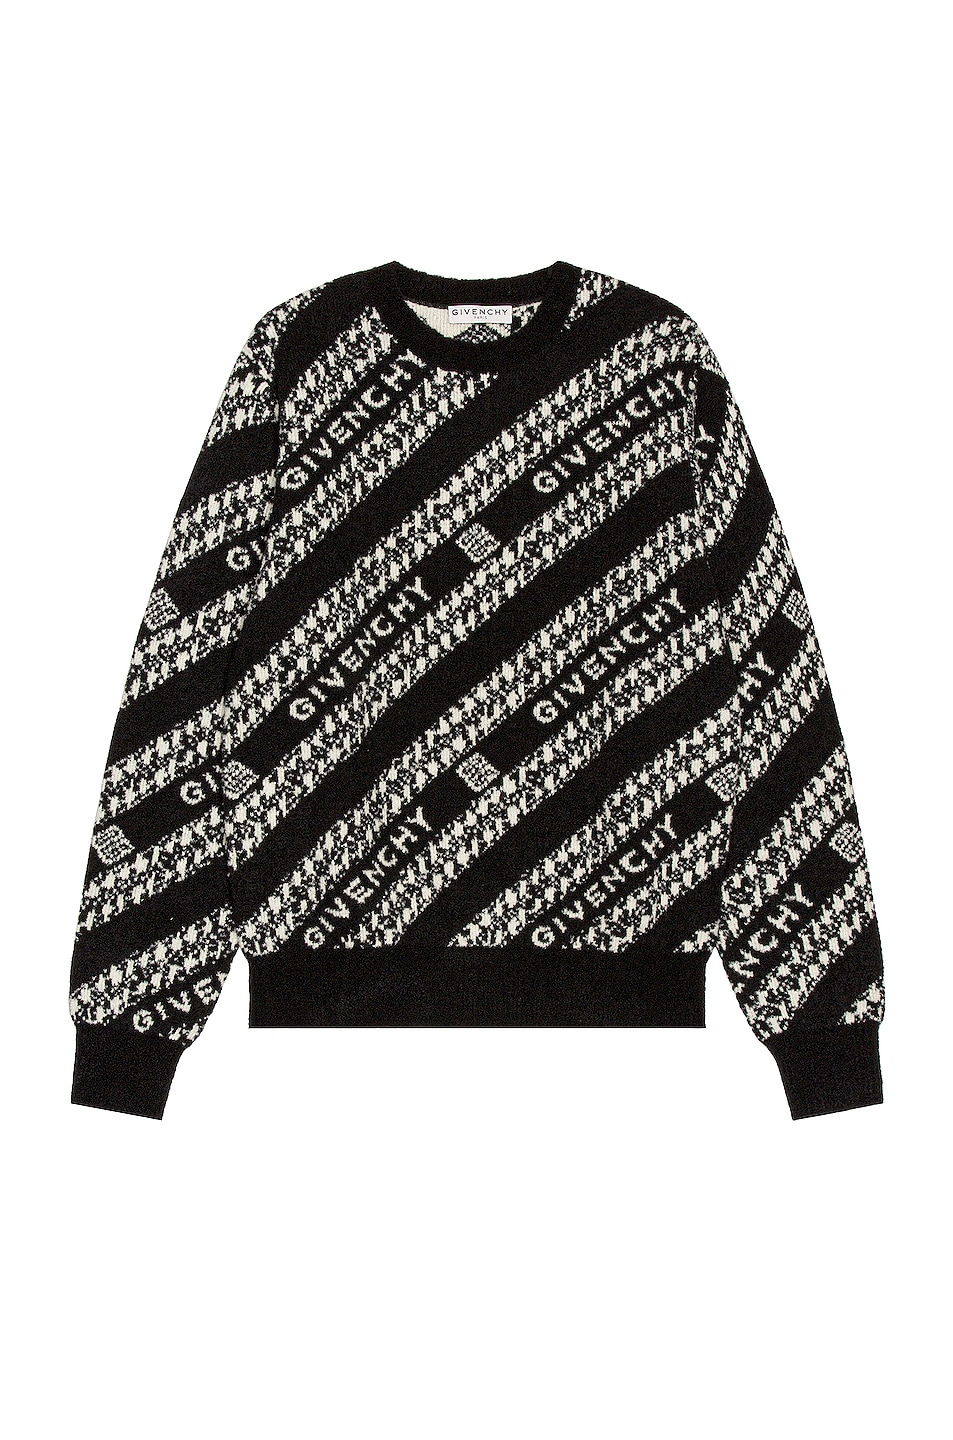 Image 1 of Givenchy Givenchy Chain Crew Neck Sweater in Black & White